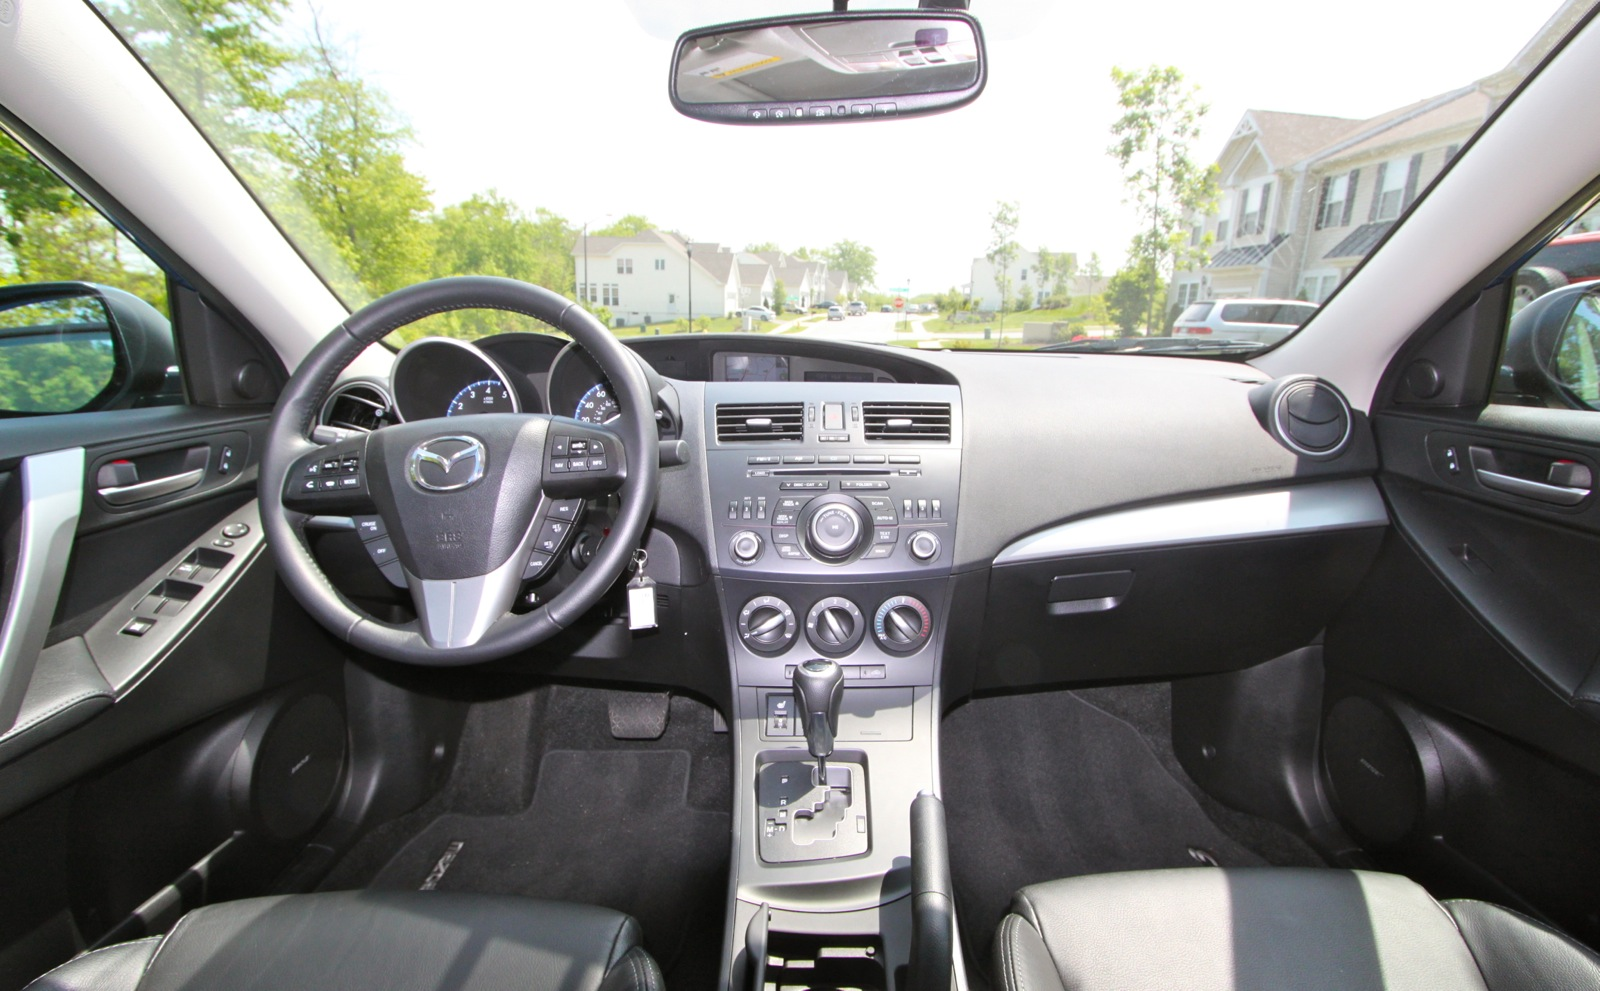 2012 mazda3 i grand touring 4 door. Black Bedroom Furniture Sets. Home Design Ideas